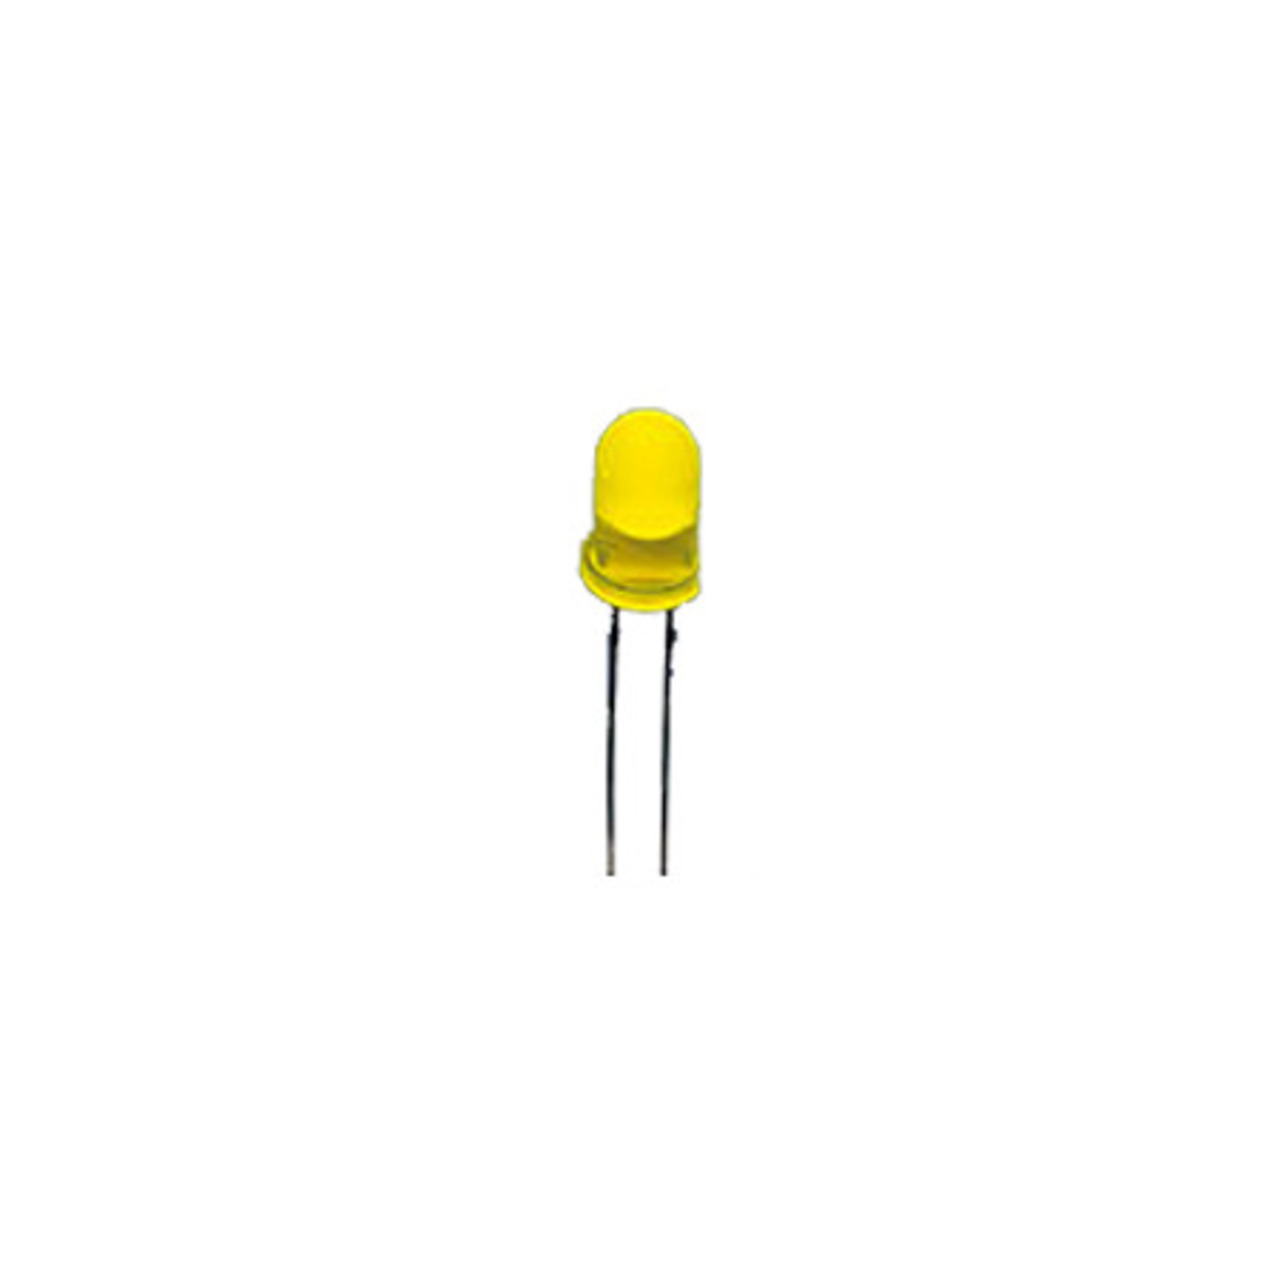 Image of 10x LED 5 mm, Gelb